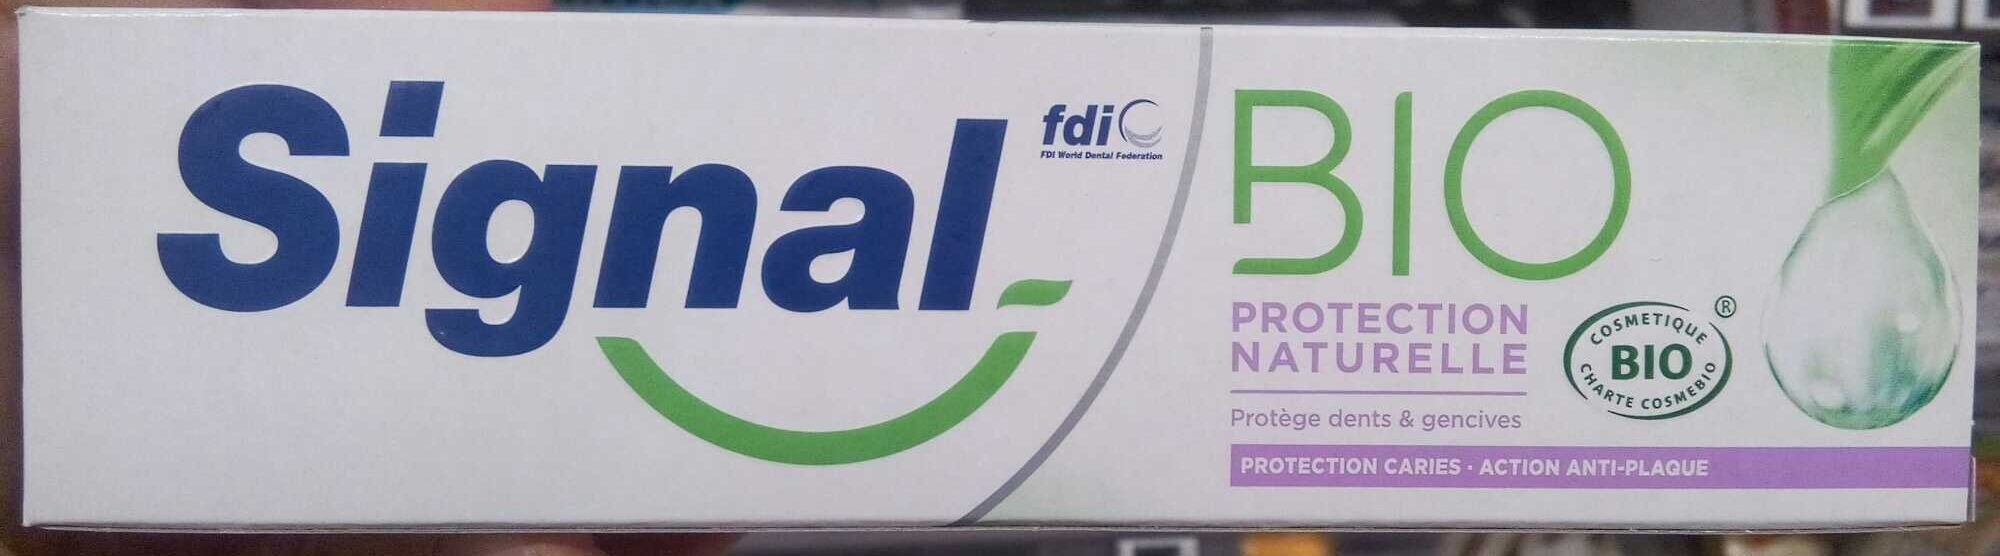 Dentifrice protection naturelle - Product - fr